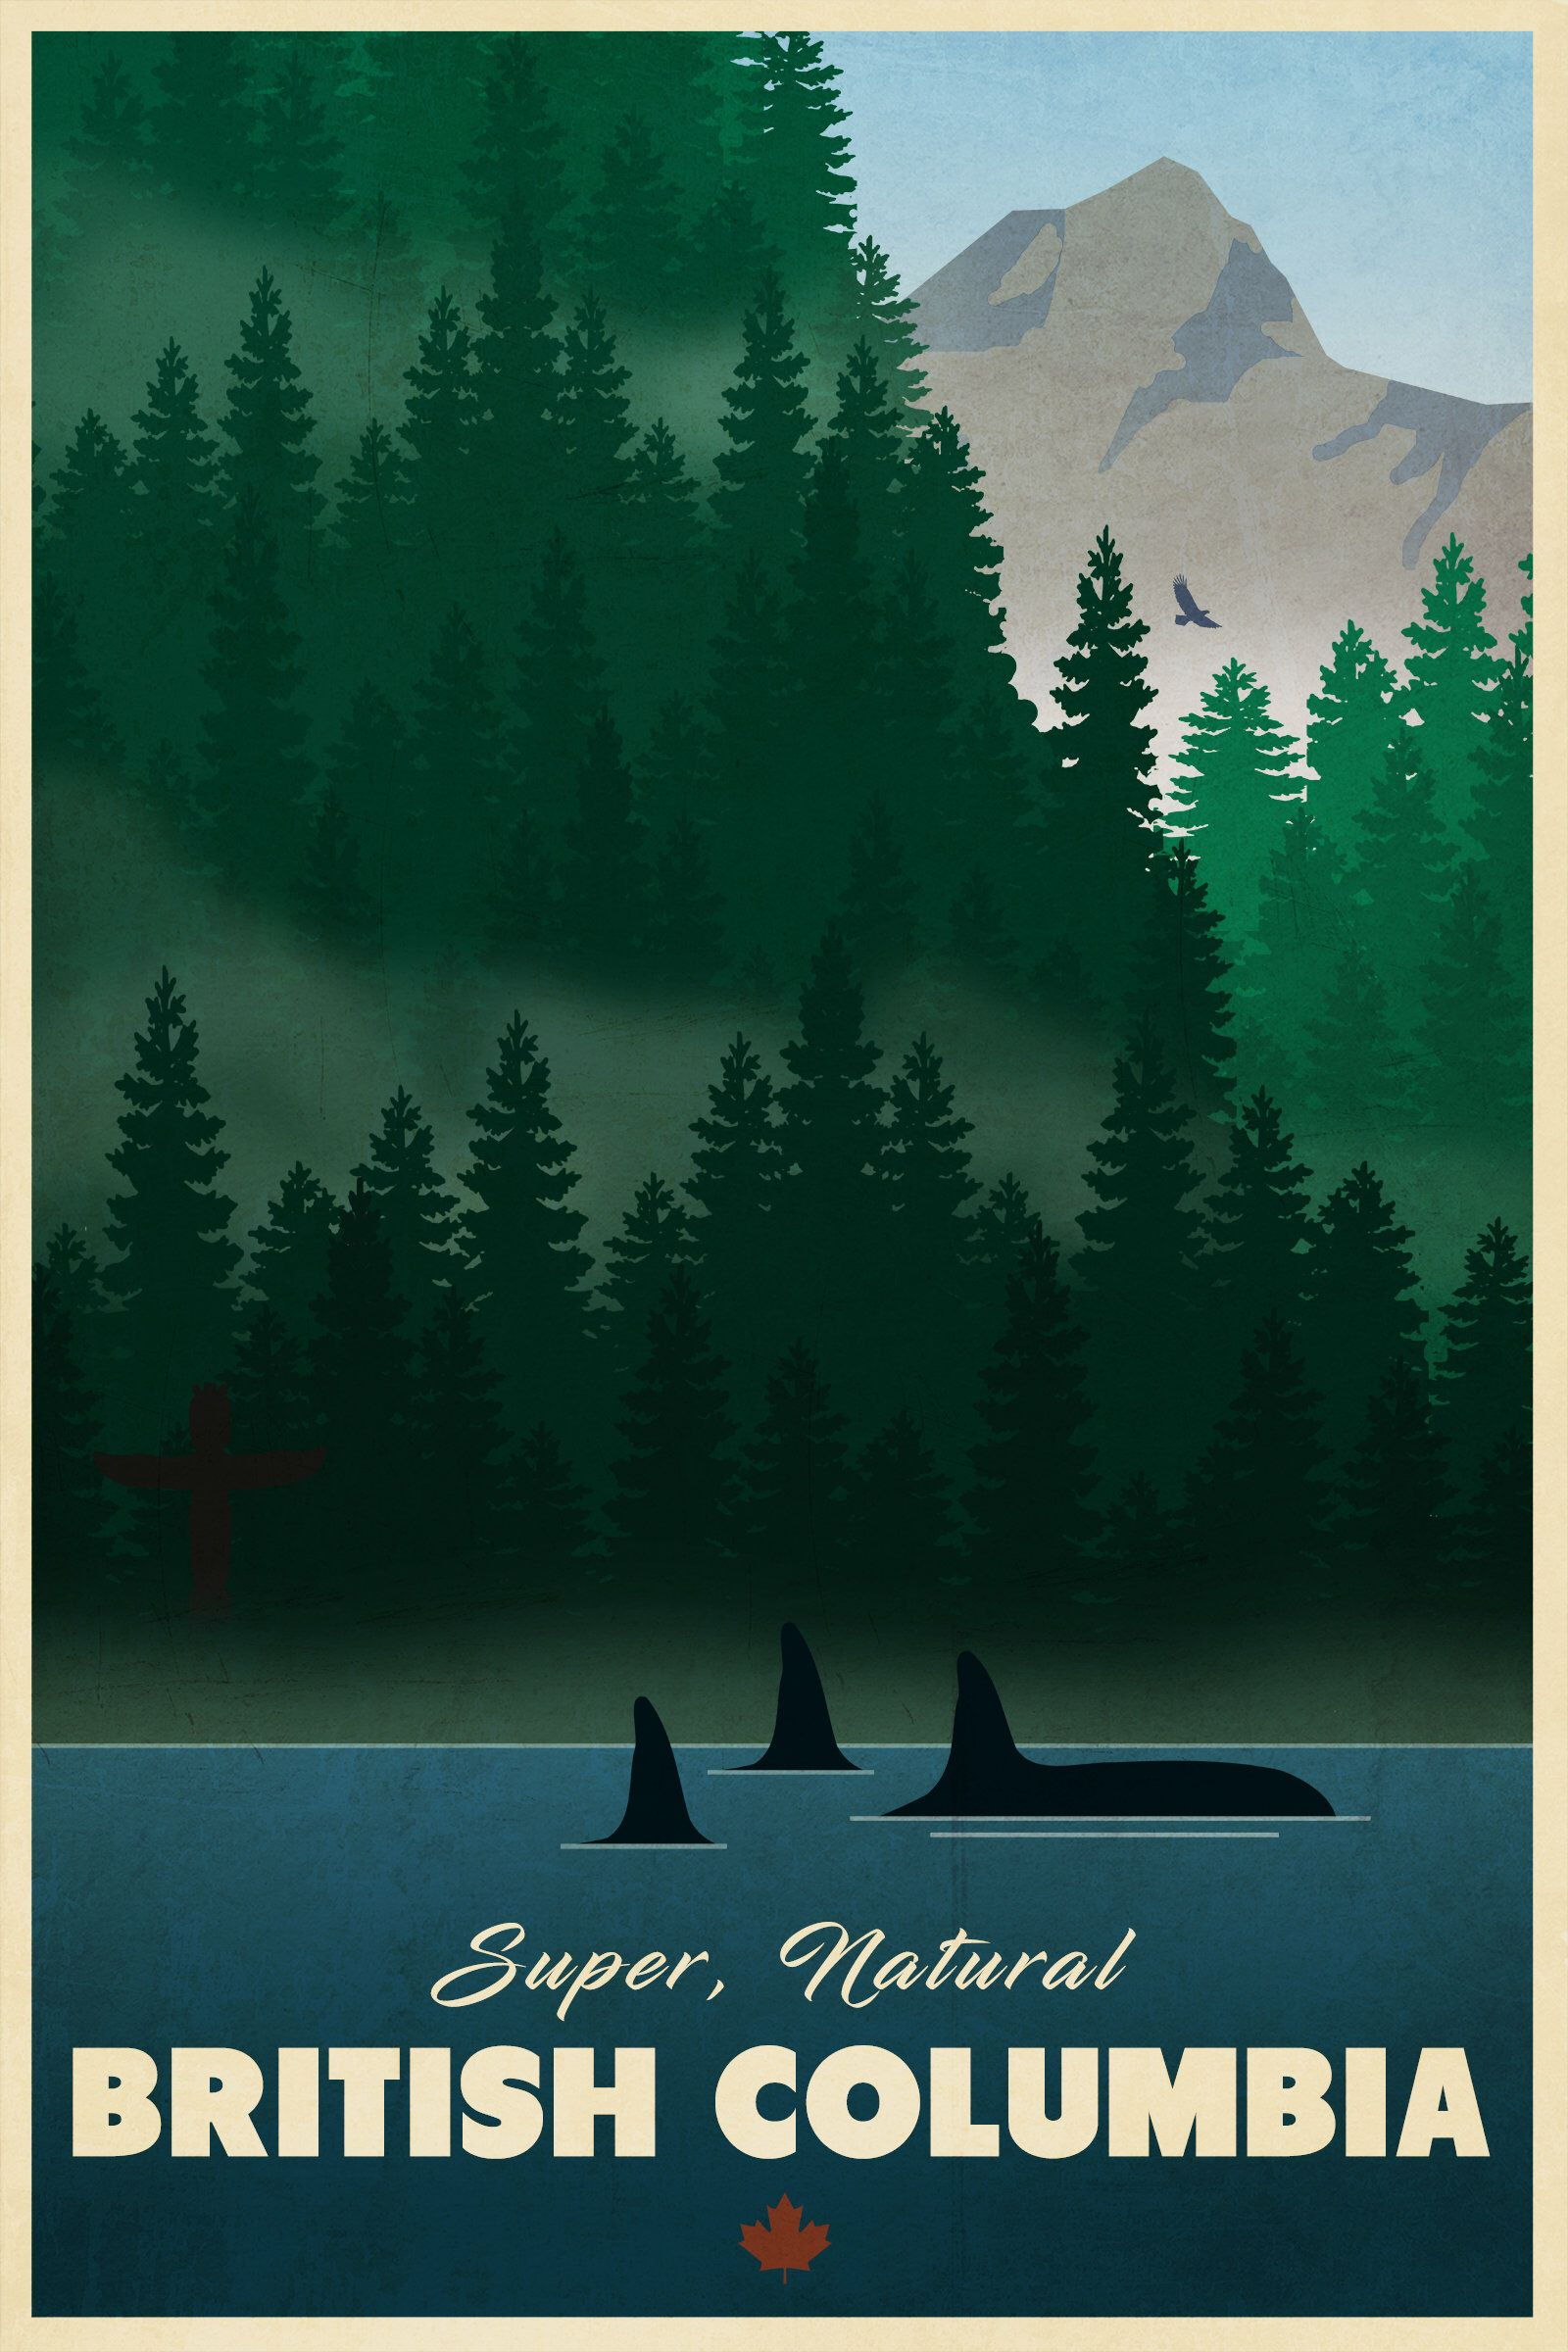 British Columbia Travel Poster British Columbia Travel Travel